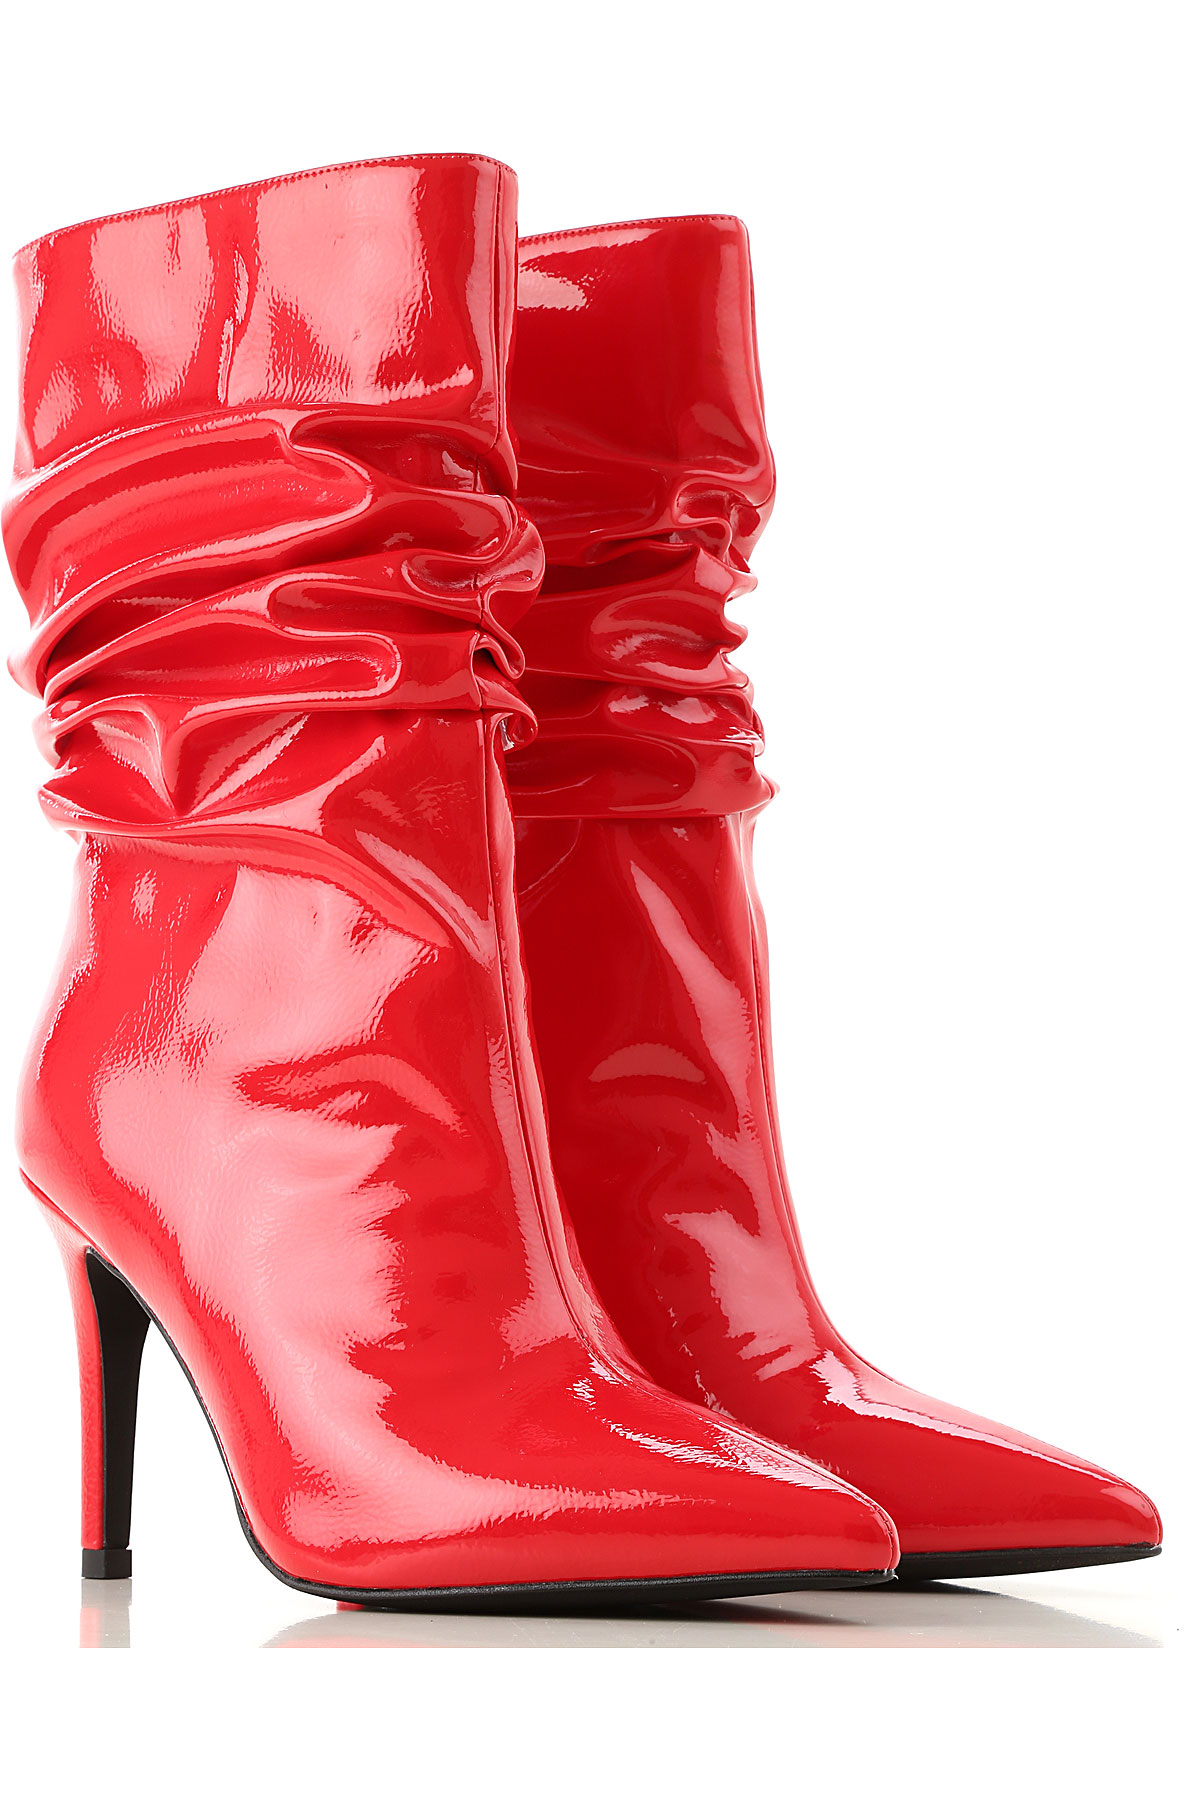 Jeffrey Campbell Boots for Women, Booties On Sale, Red, Patent Leather, 2019, 11 6 7 8 9